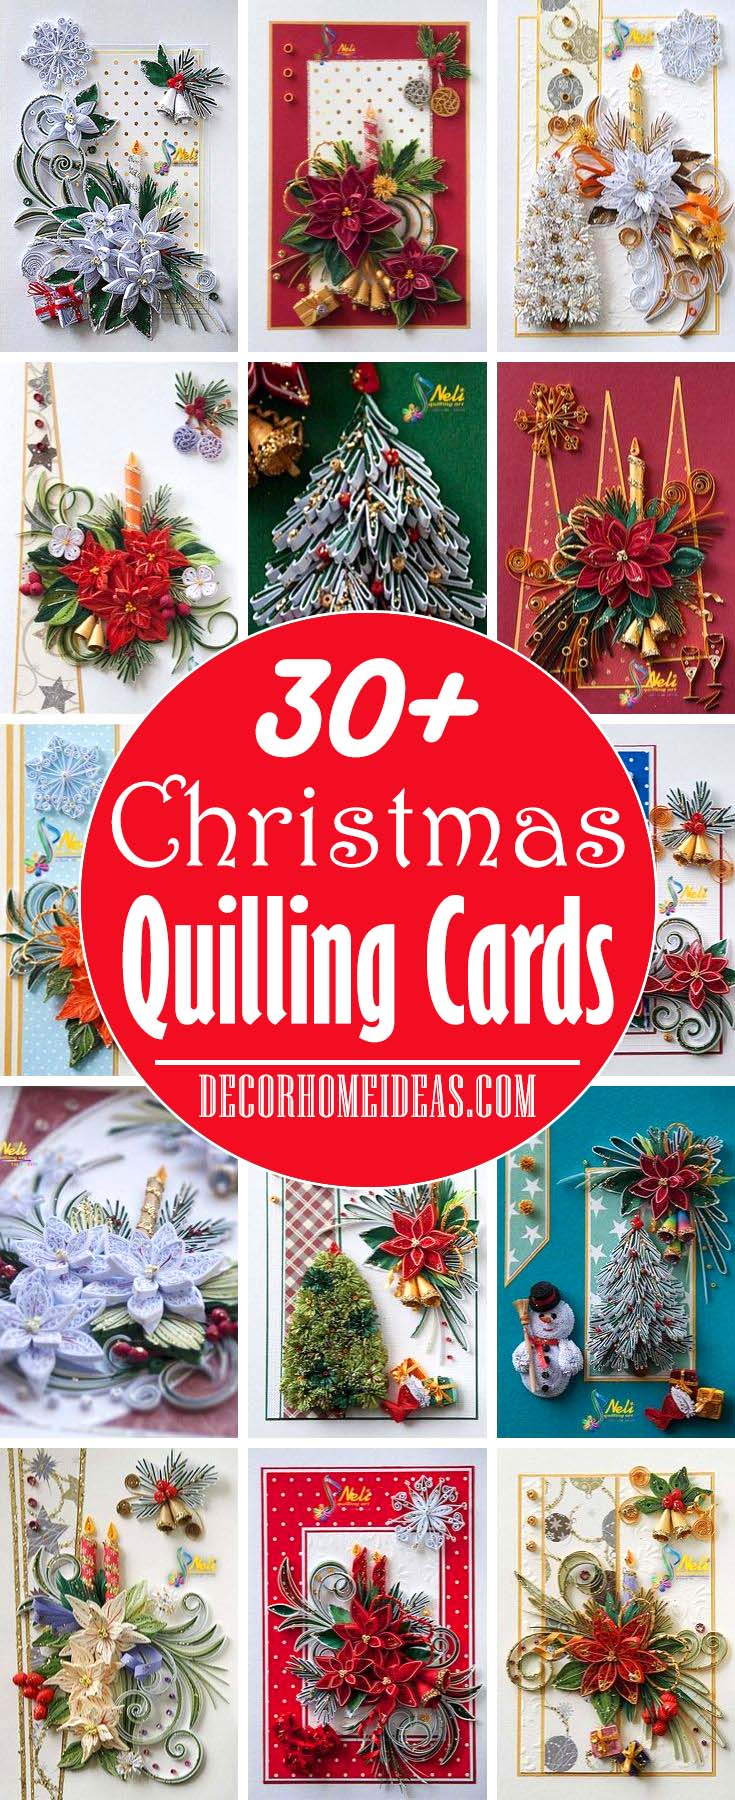 Christmas Quilling Cards Ideas and Designs. #quilling #Christmas #cards #decorhomeideas